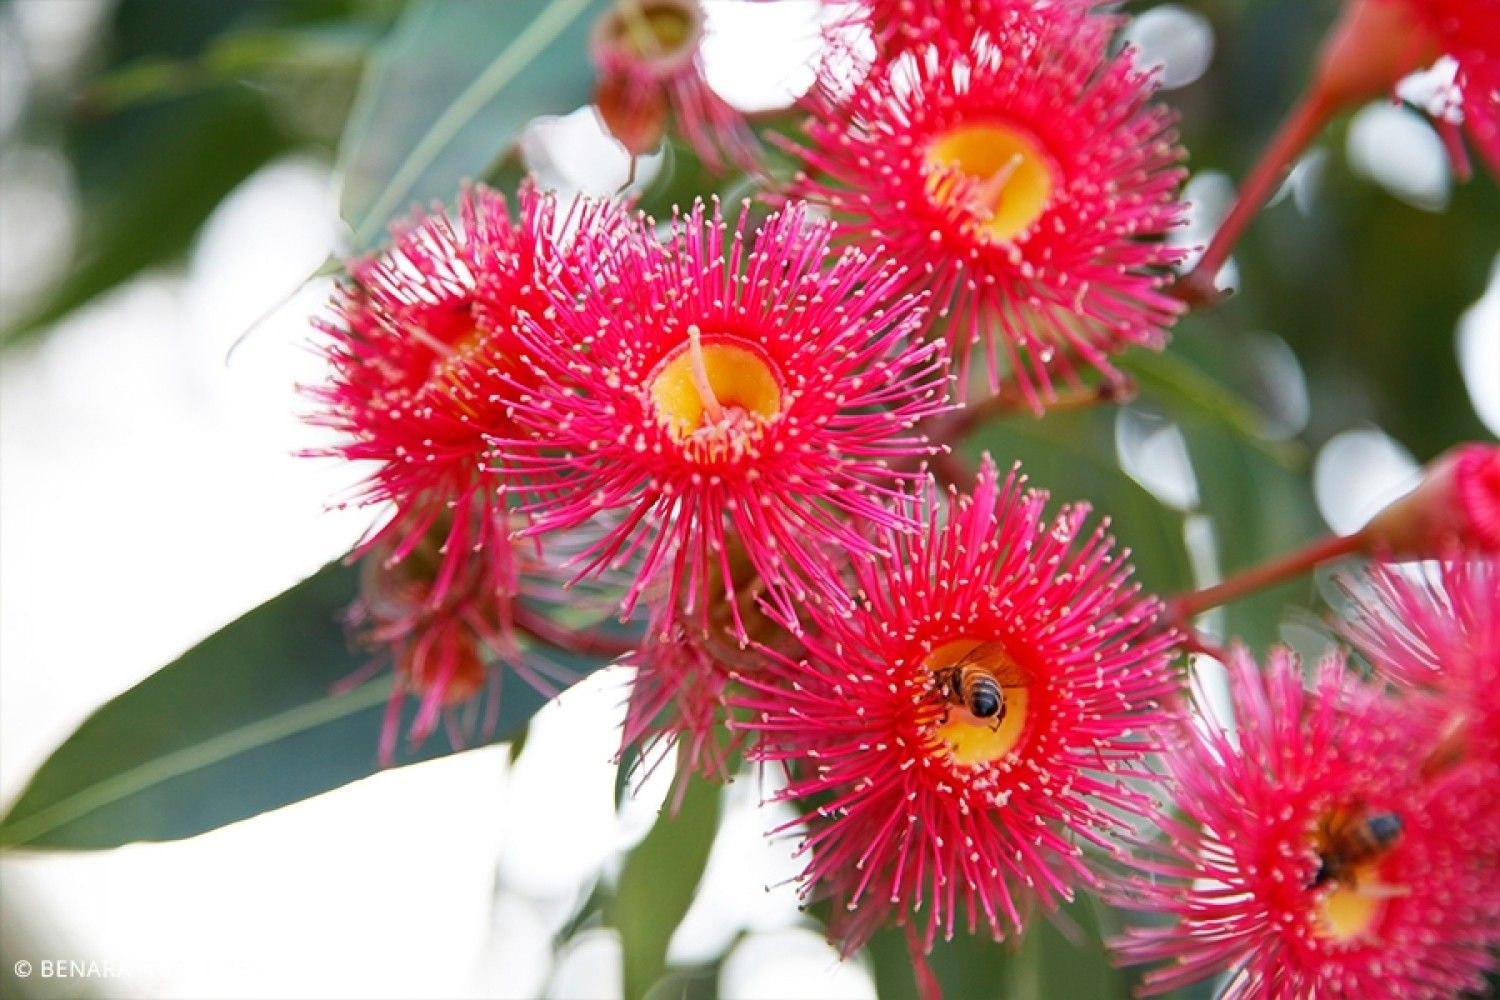 Pin by Aj on TAFE Botanical species, Types of flowers